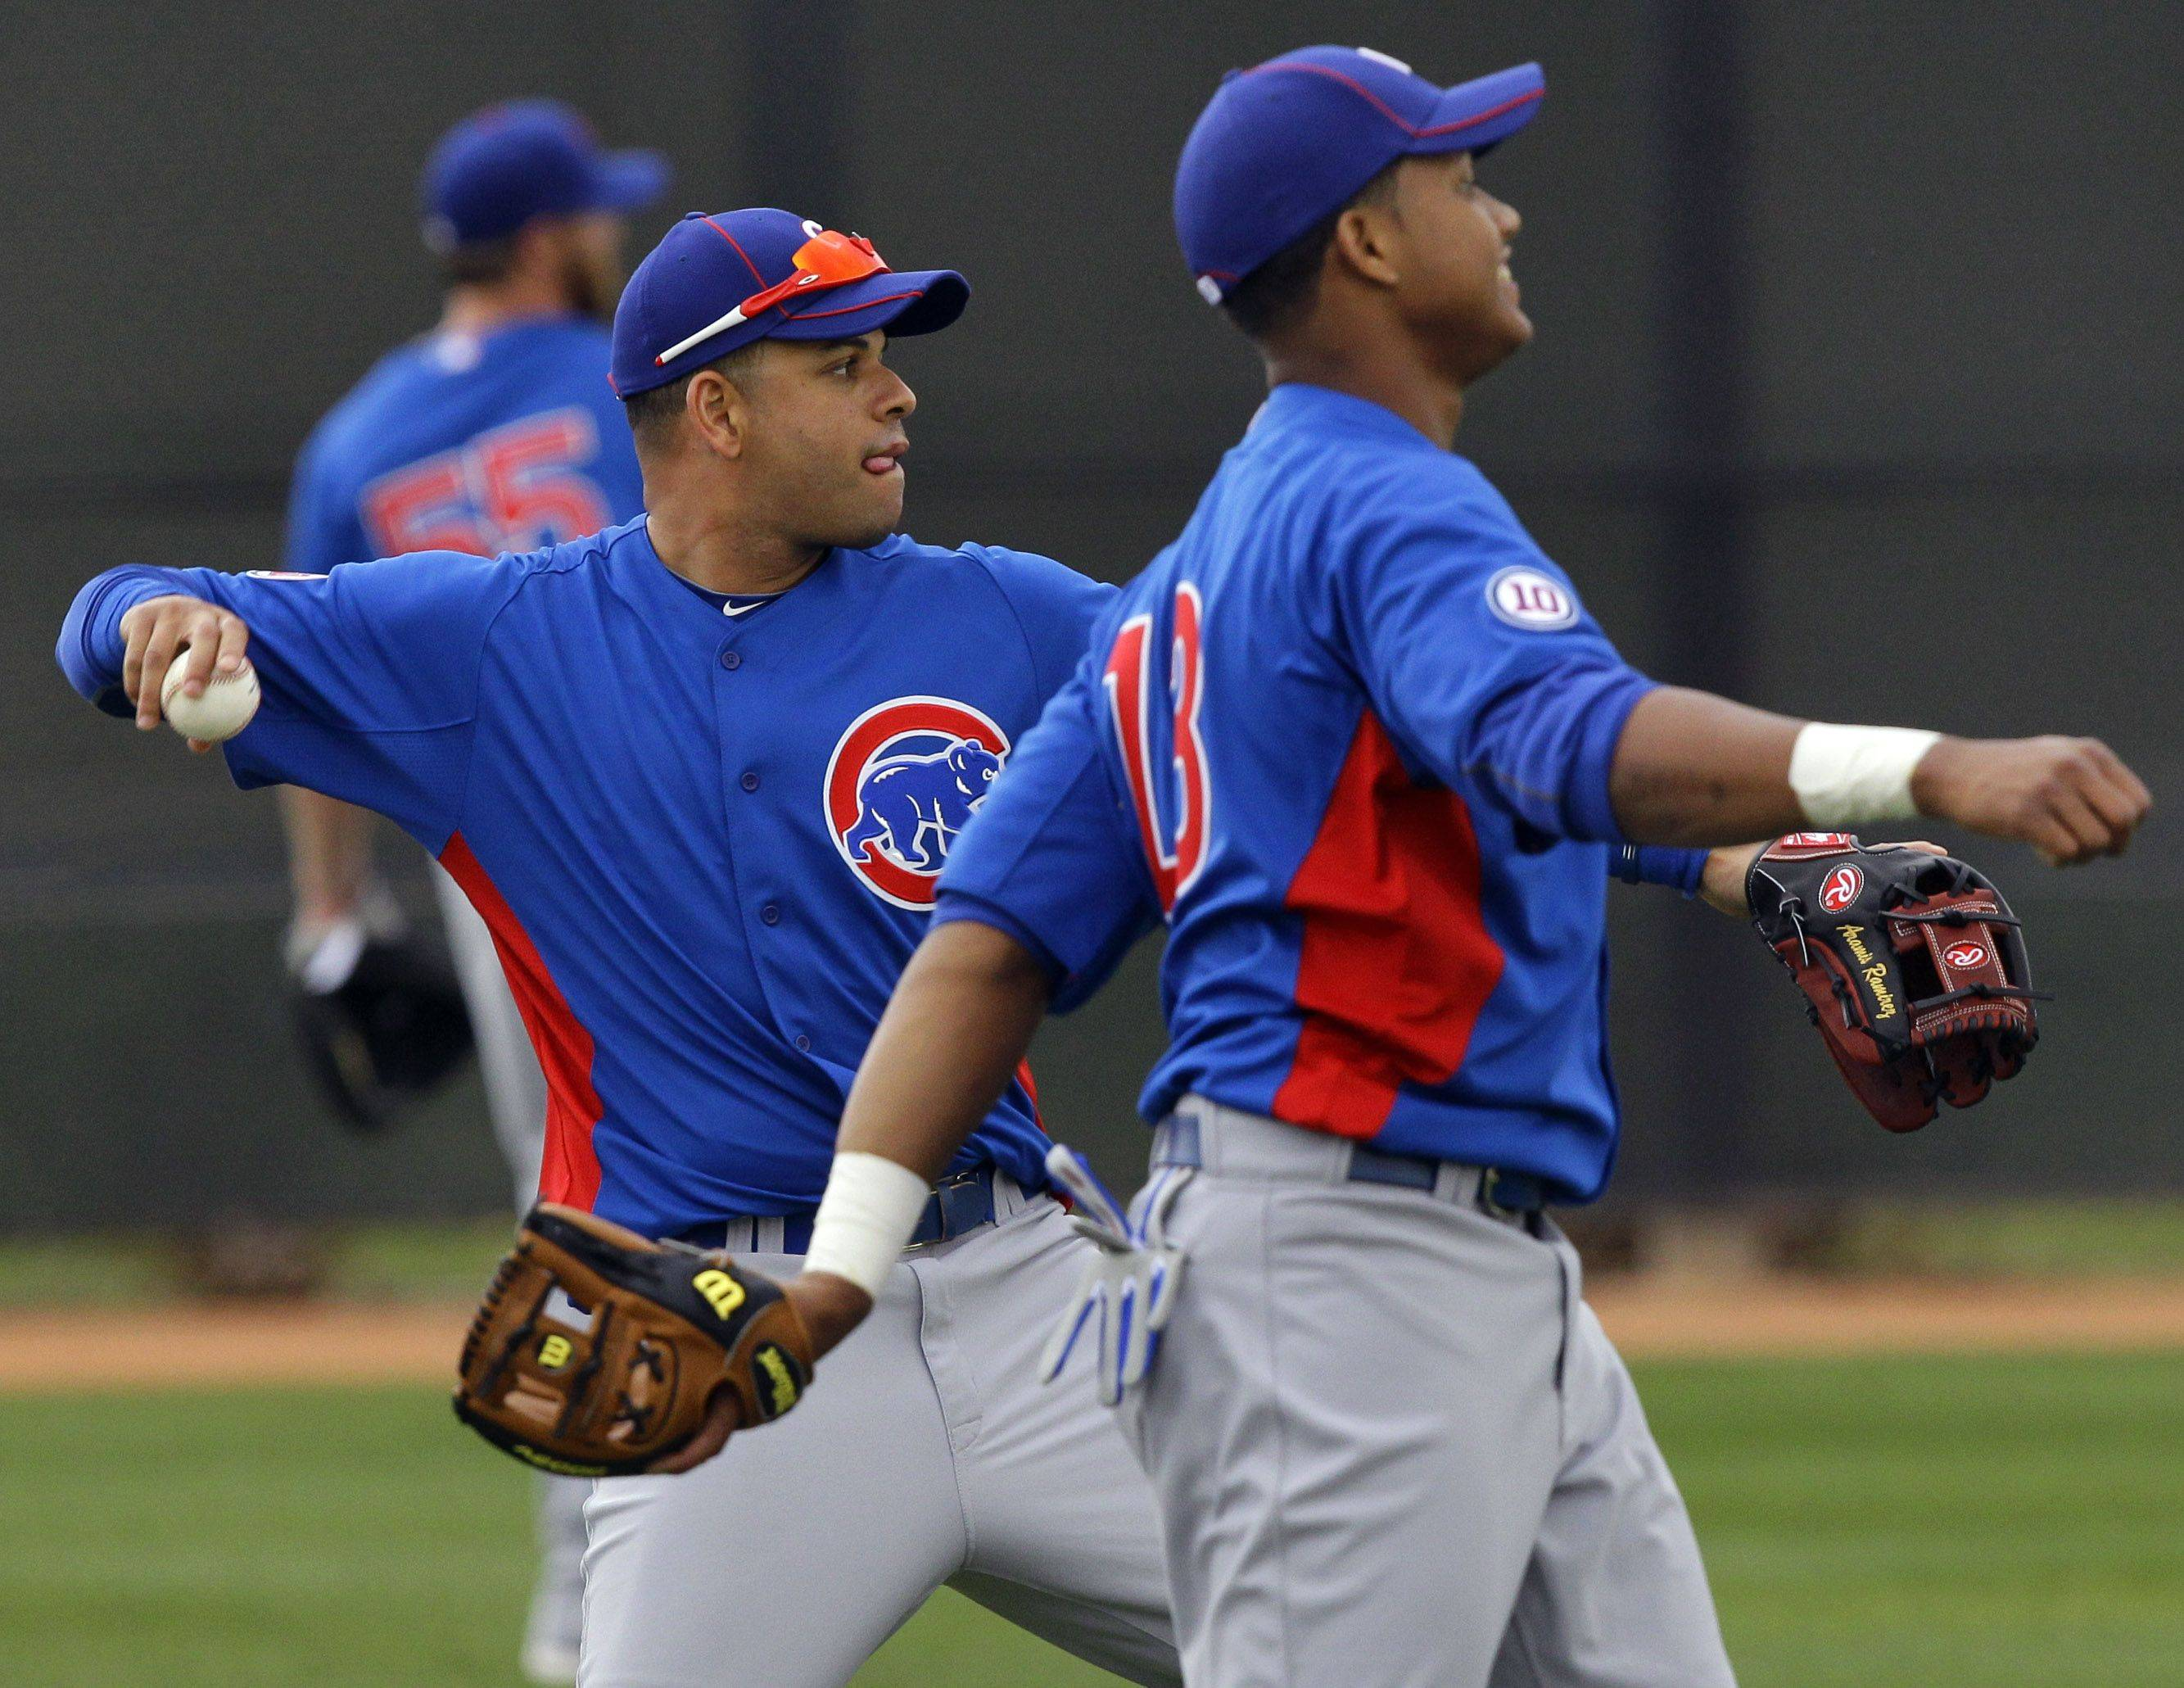 Chicago Cubs third baseman Aramis Ramirez, left, and Starlin Castro throw, Saturday, Feb. 19, 2011, at the Cubs' baseball spring training facility in Mesa, Ariz.